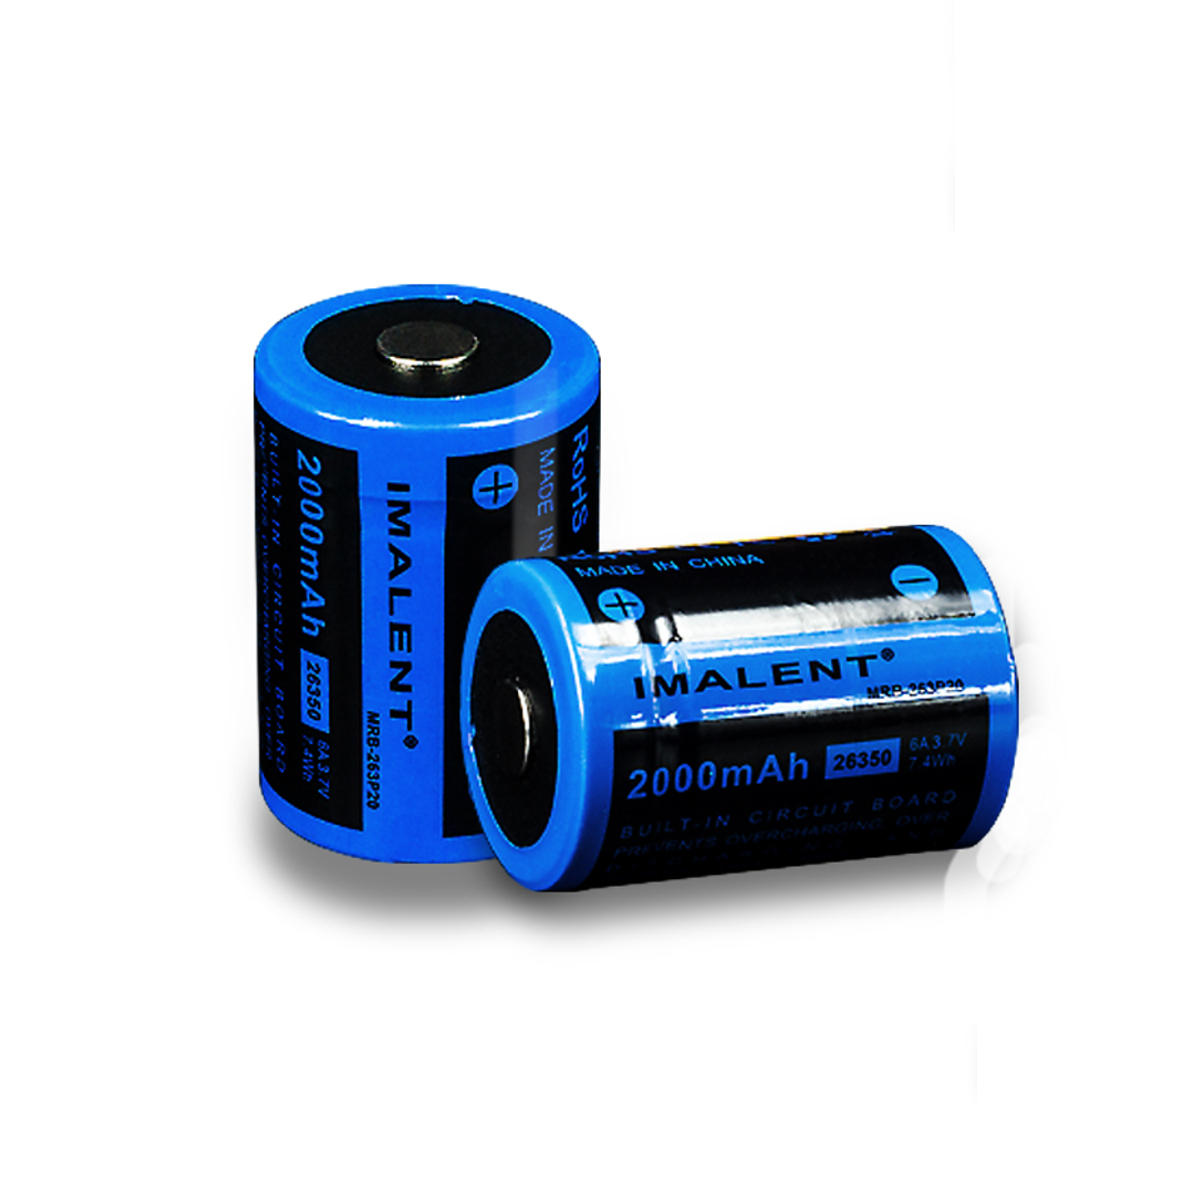 1 Pic Imalent MRB-263P20 2000mAh High Discharge Performance 26350 Li-ion Rechargeable Battery